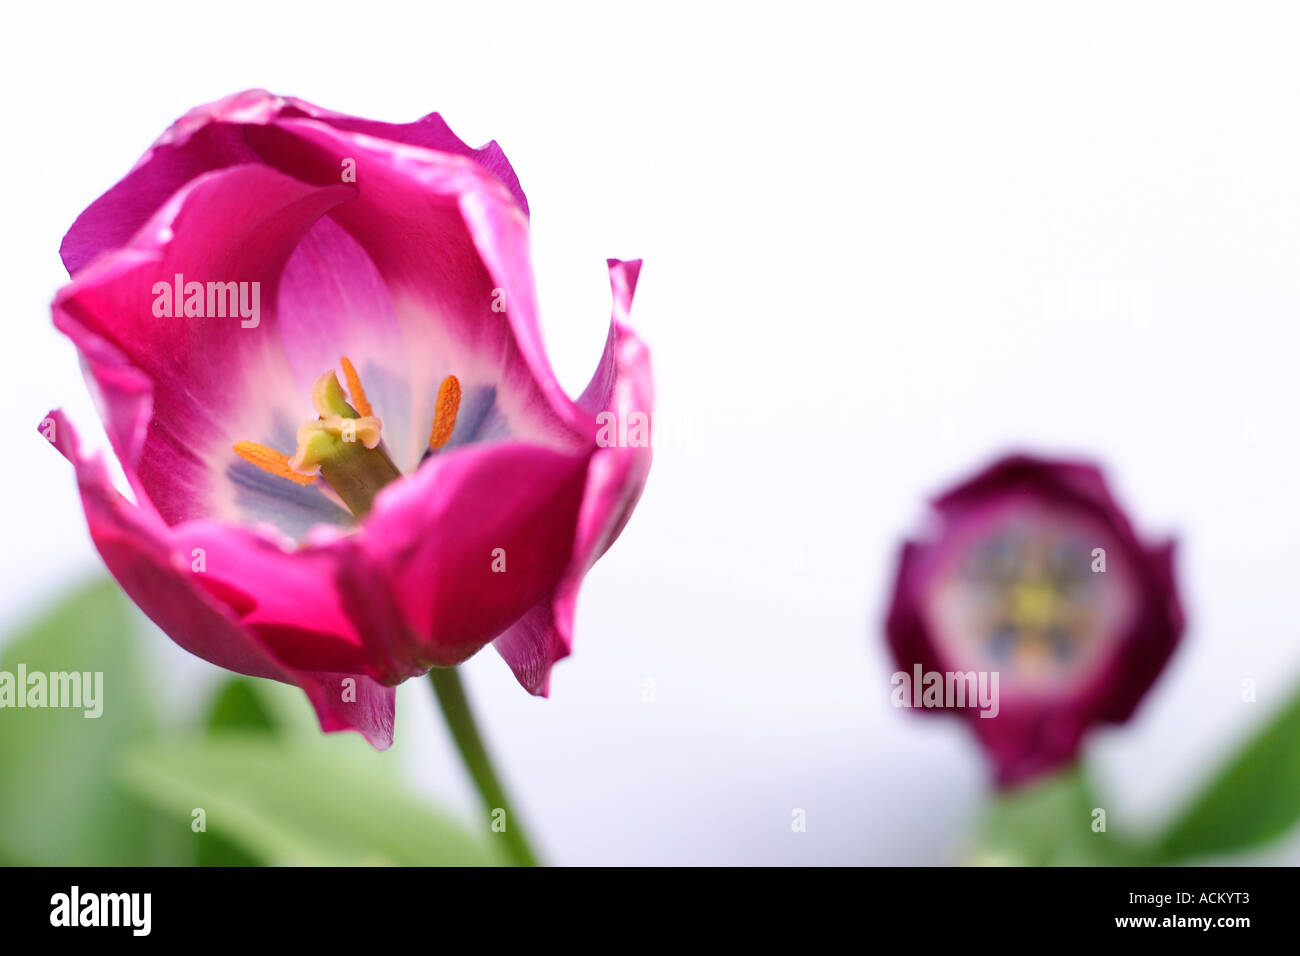 Two purple tulips against a white background with green leaves. Focus is on the tulip in the foreground. - Stock Image